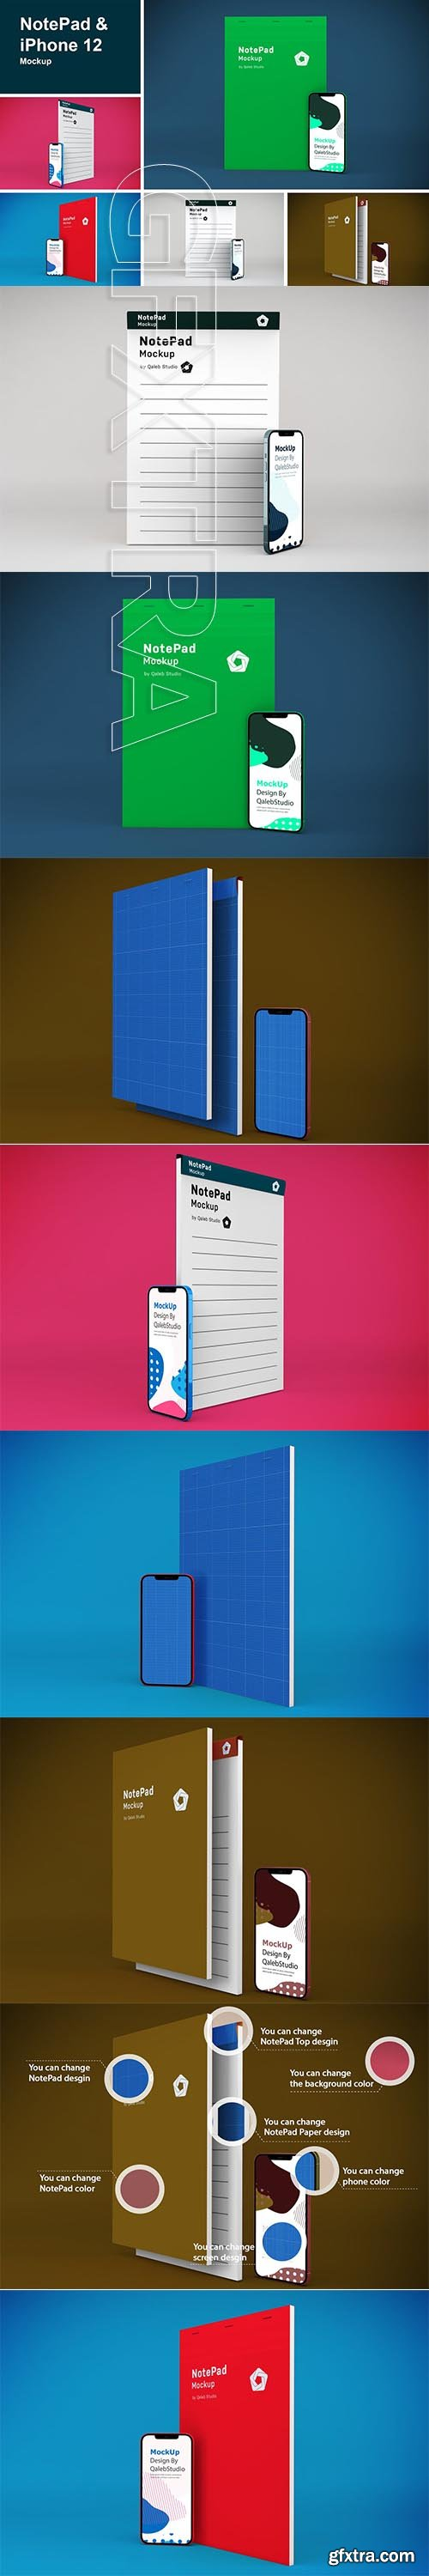 NotePad & iPhone 12 Mockup